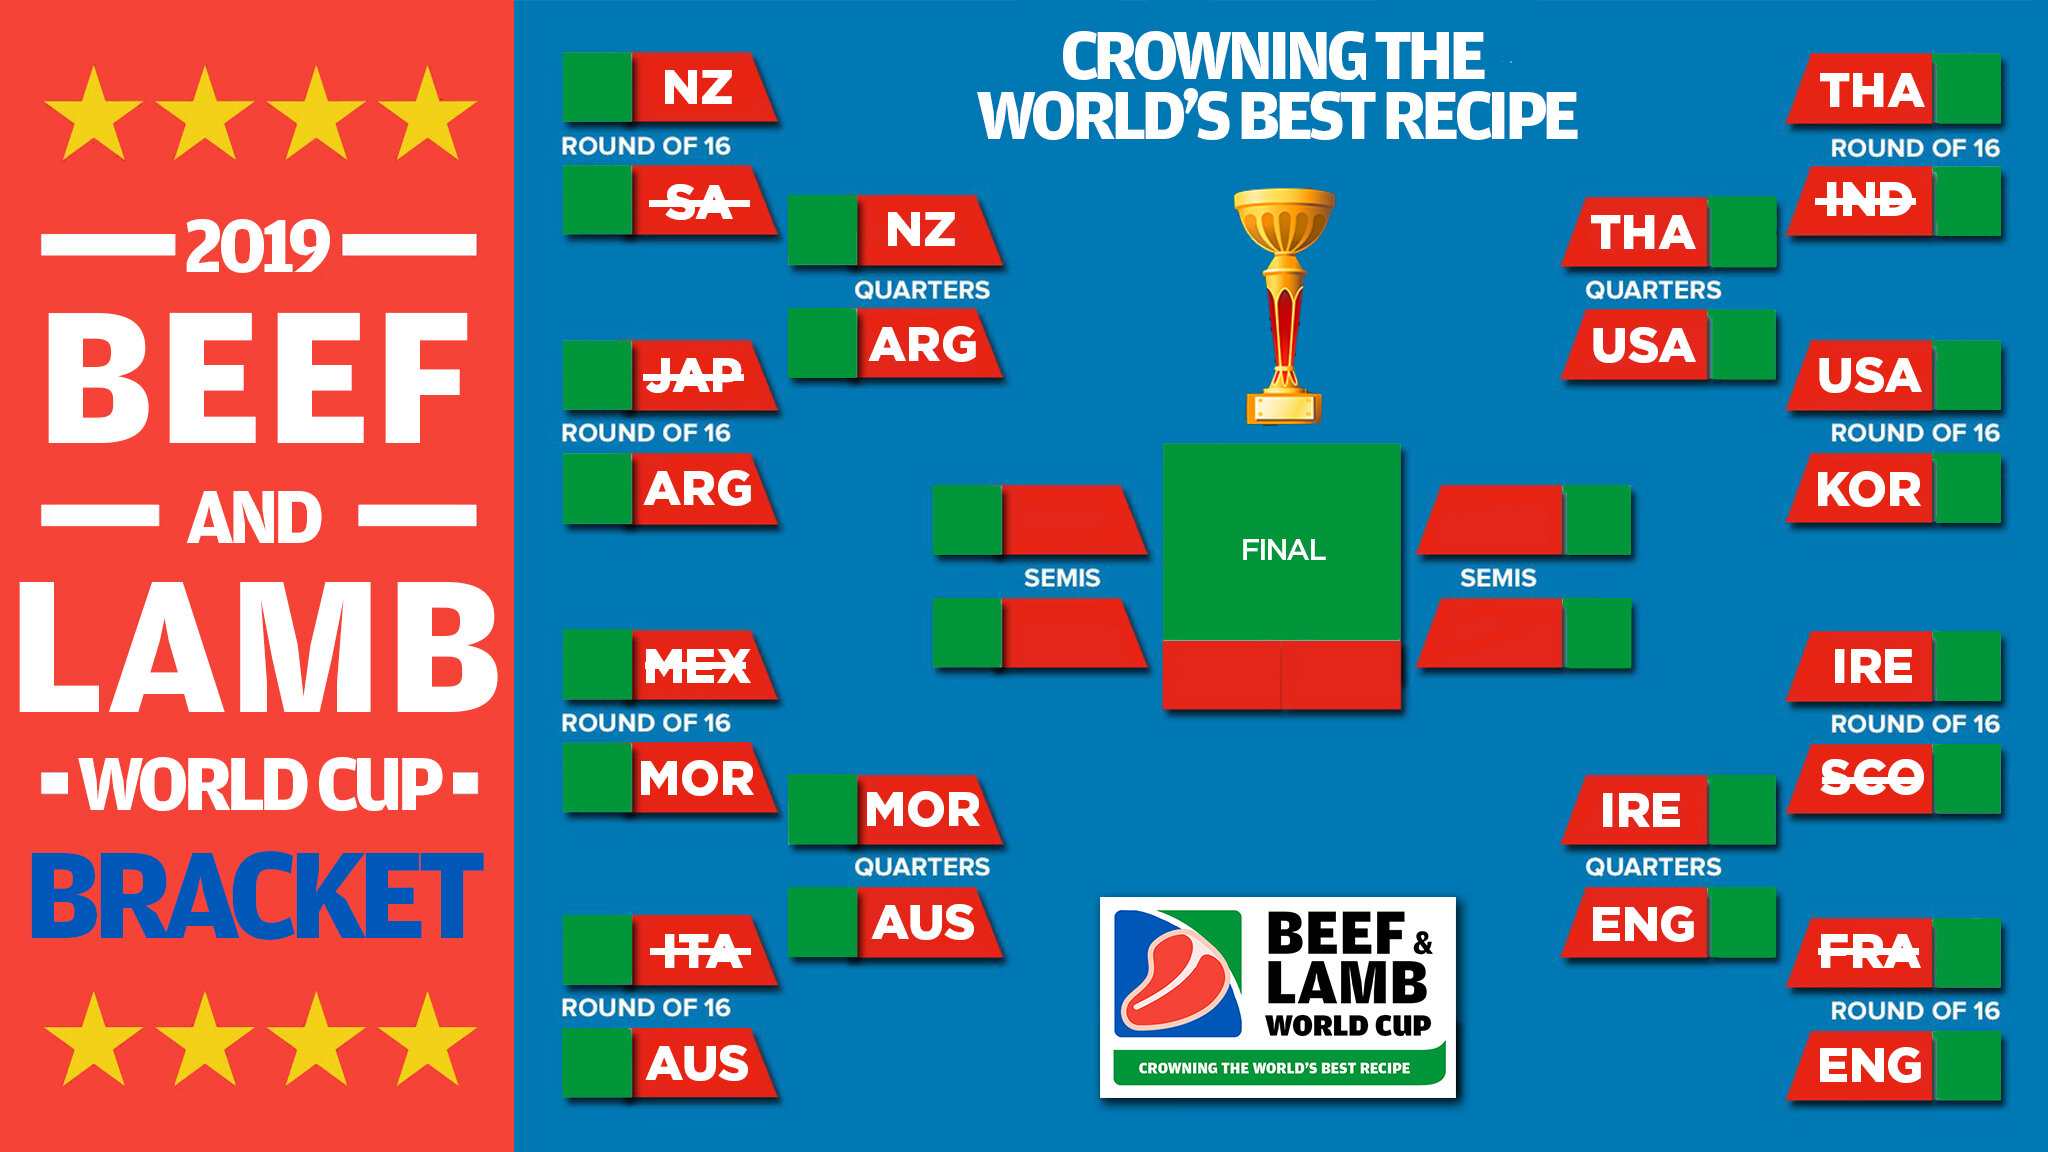 beef and lamb world cup bracket update.jpg